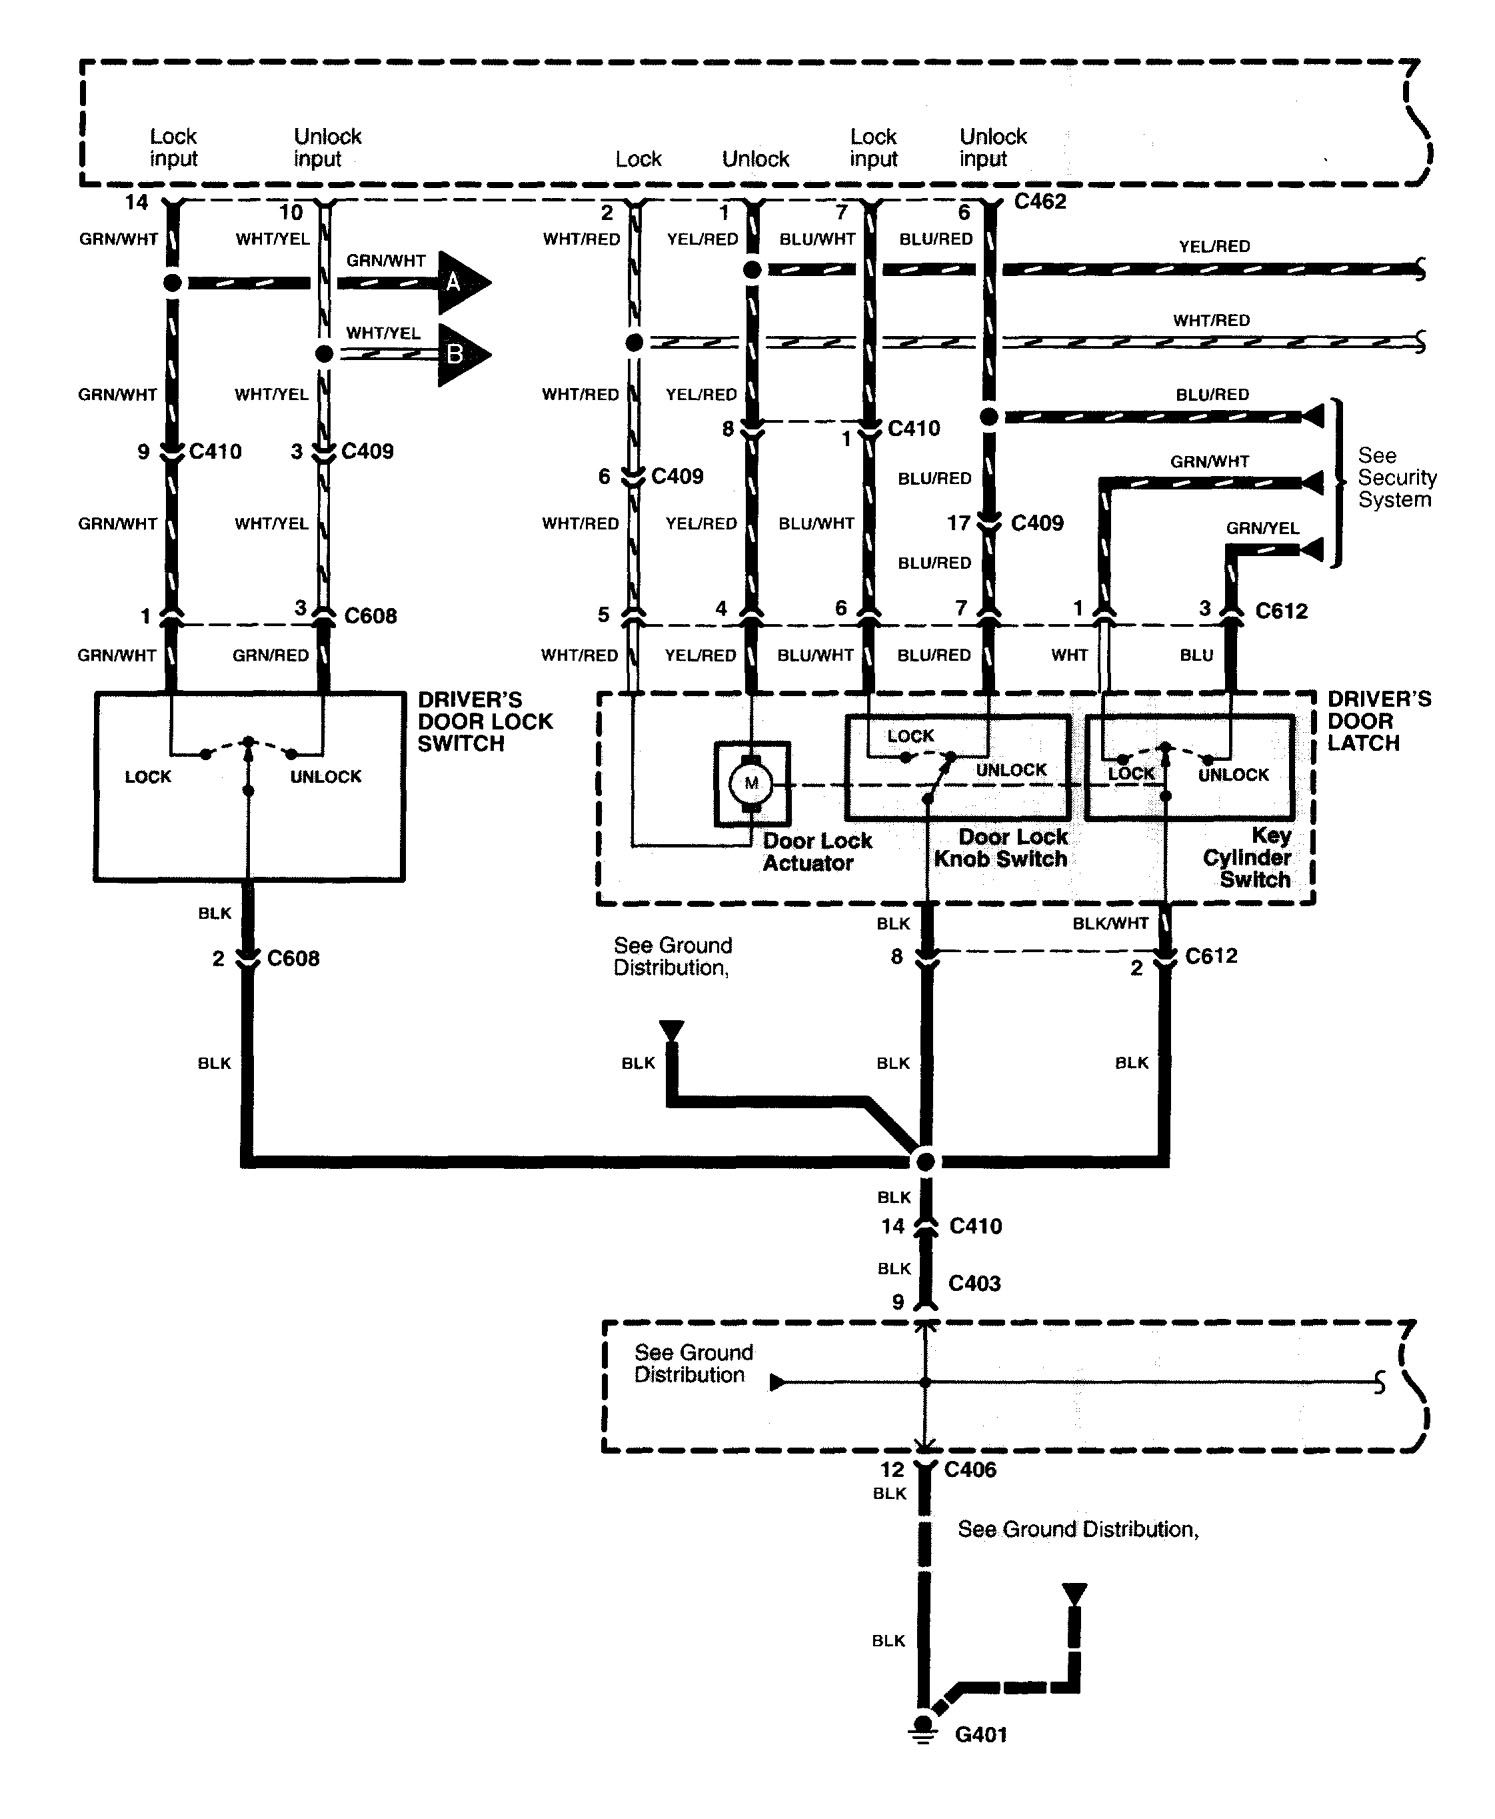 [DIAGRAM] Ew 160 New Holland Wiring Diagram FULL Version